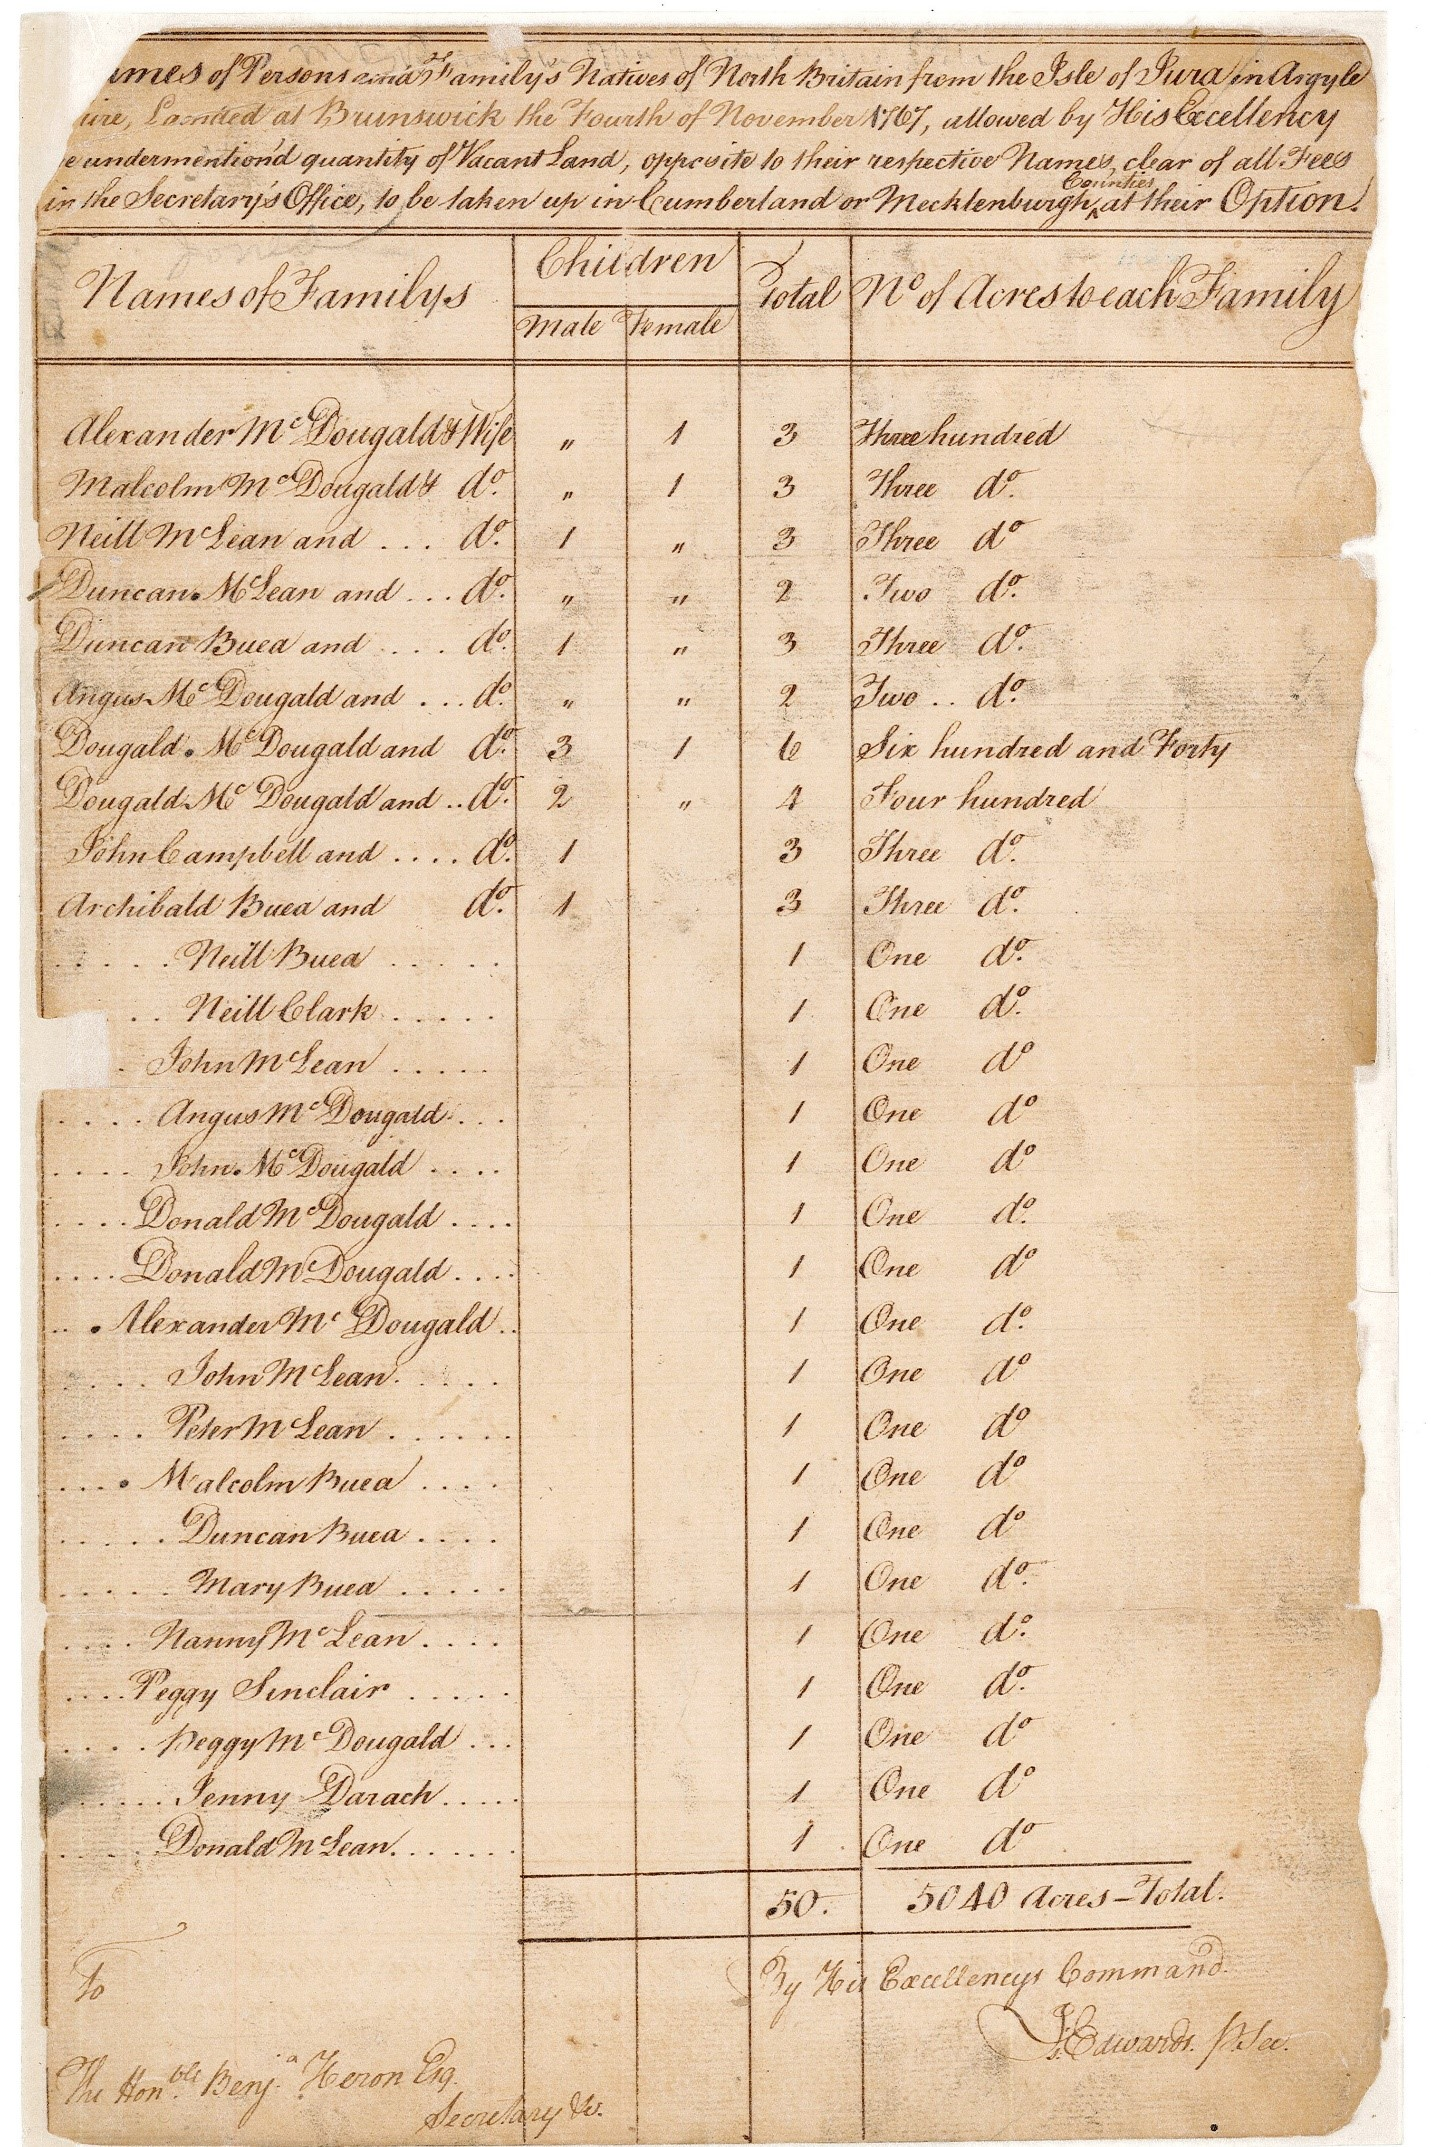 List of Land Grants to Scots, Isle of Jura, Argyle Shire, Nov.4, 1767